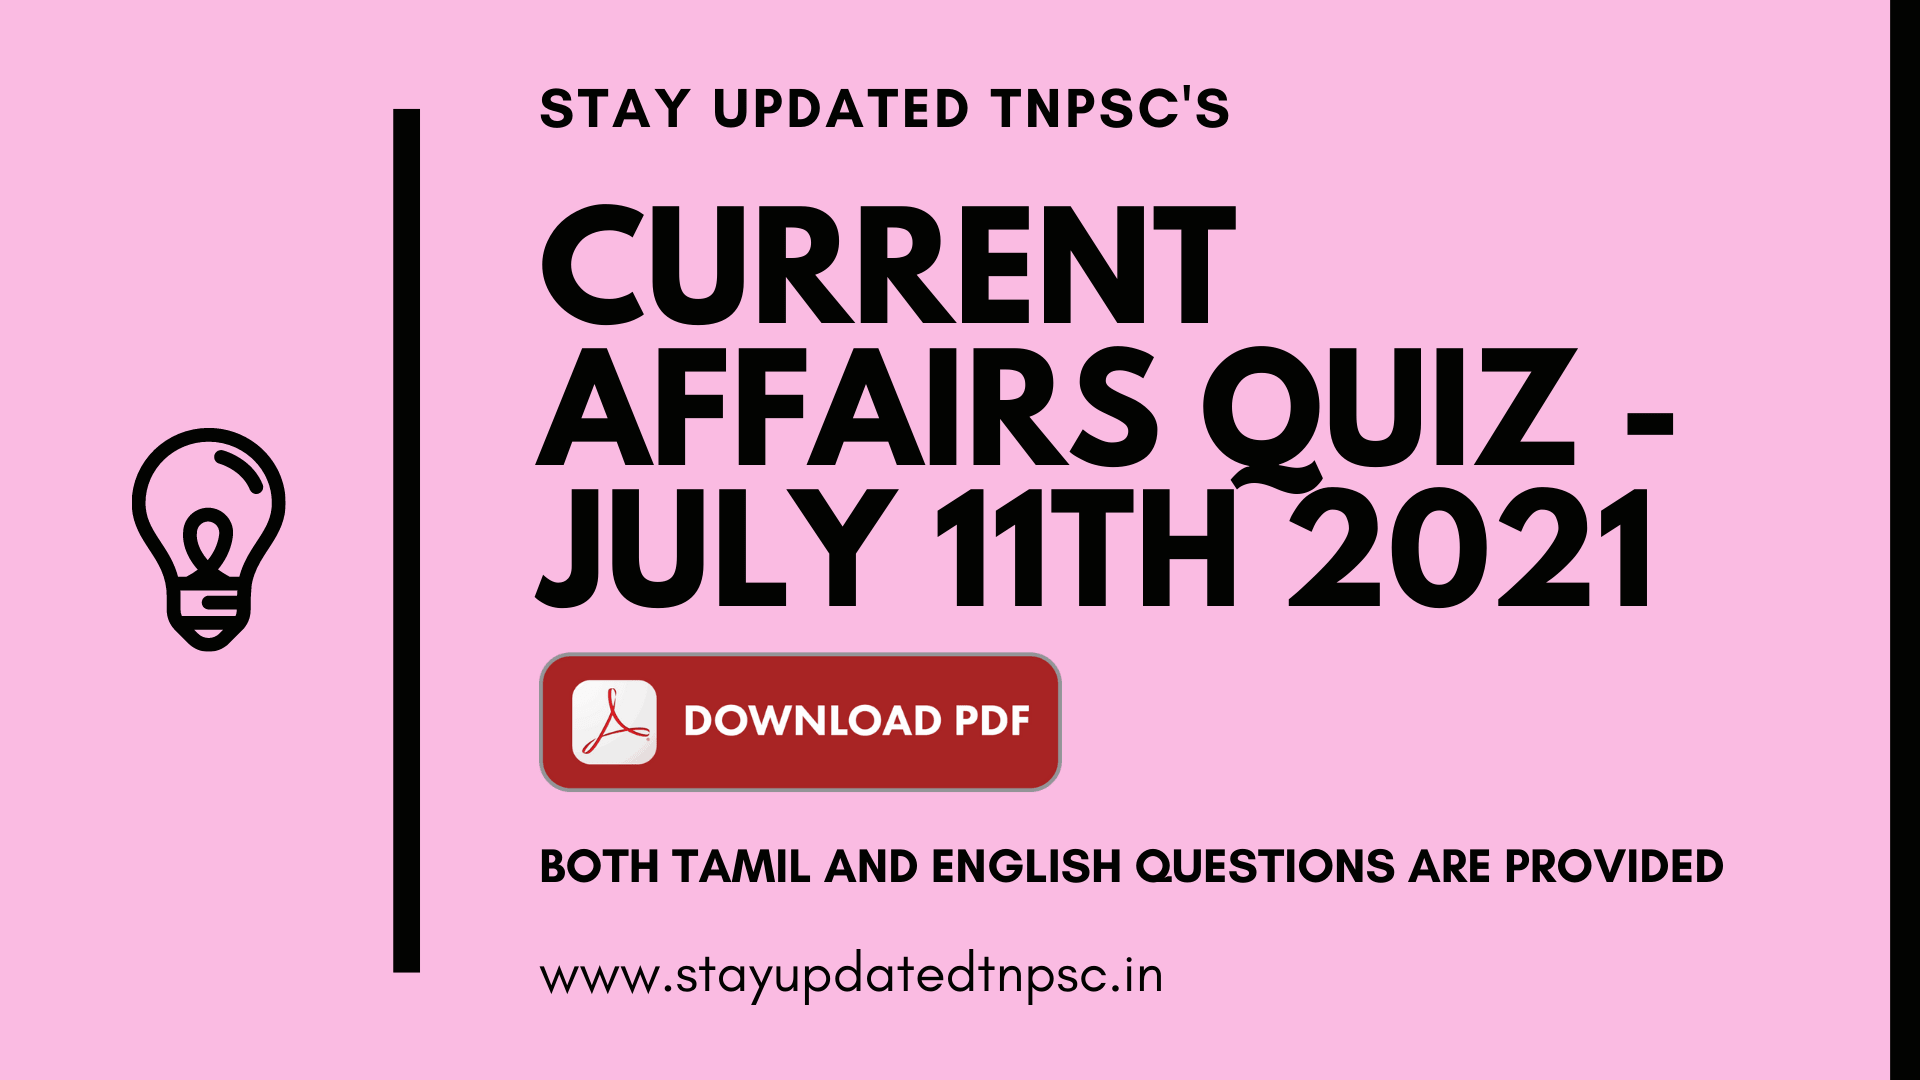 TNPSC DAILY CURRENT AFFAIRS: 11 JUNE 2021 TNPSC தினசரி நடப்பு நிகழ்வுகள்: 11 ஜூன் 2021 BOTH TAMIL AND ENGLISH QUESTIONS ARE PROVIDED DOWNLOAD PDF AT THE END OF THE QUESTIONS